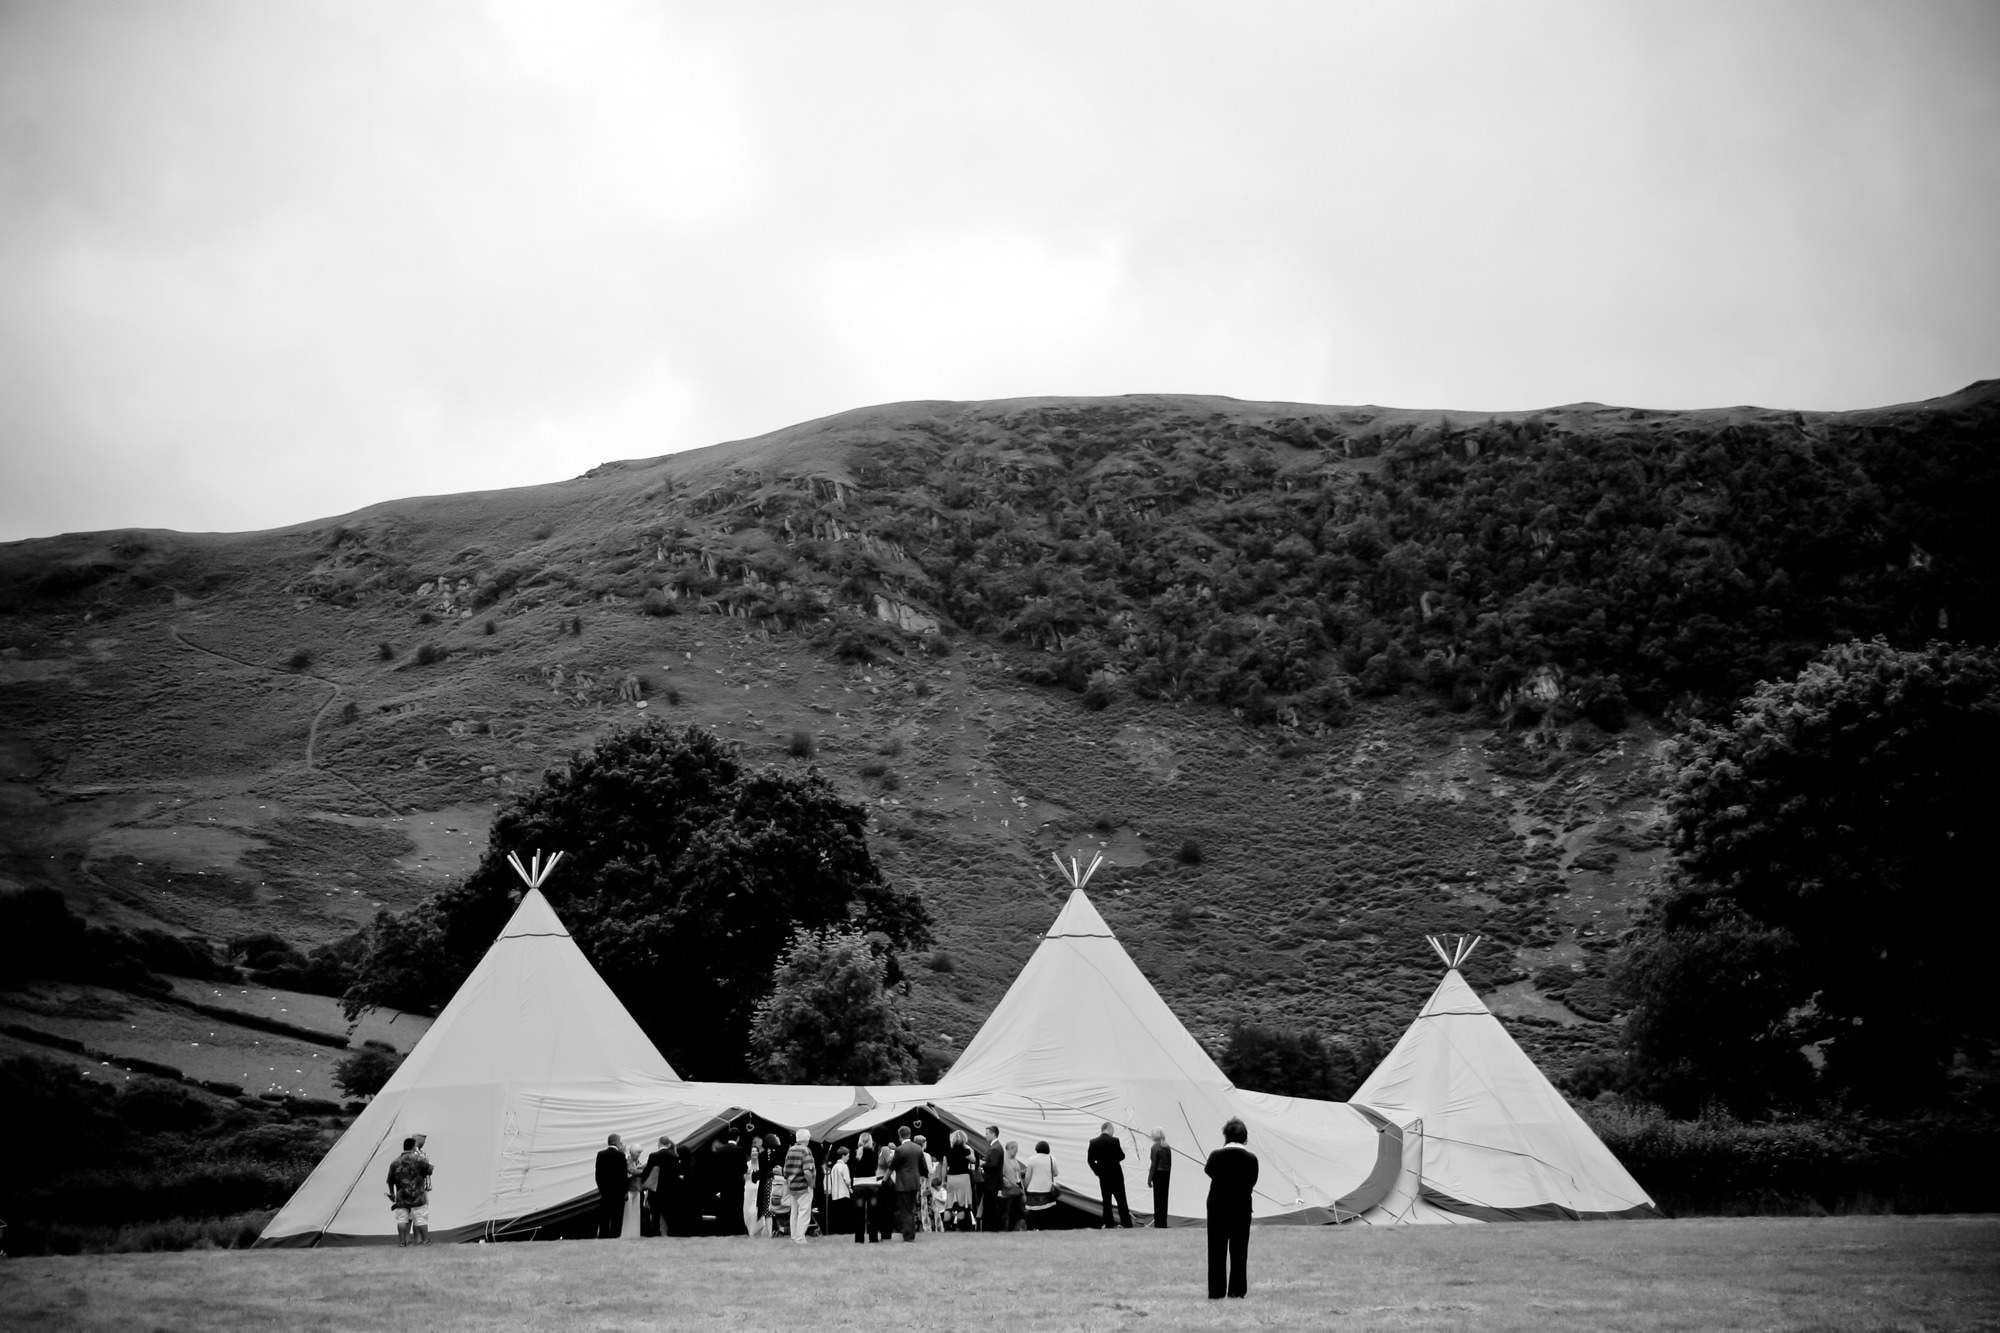 Copy of Copy of Copy of Tipi being used for a wedding